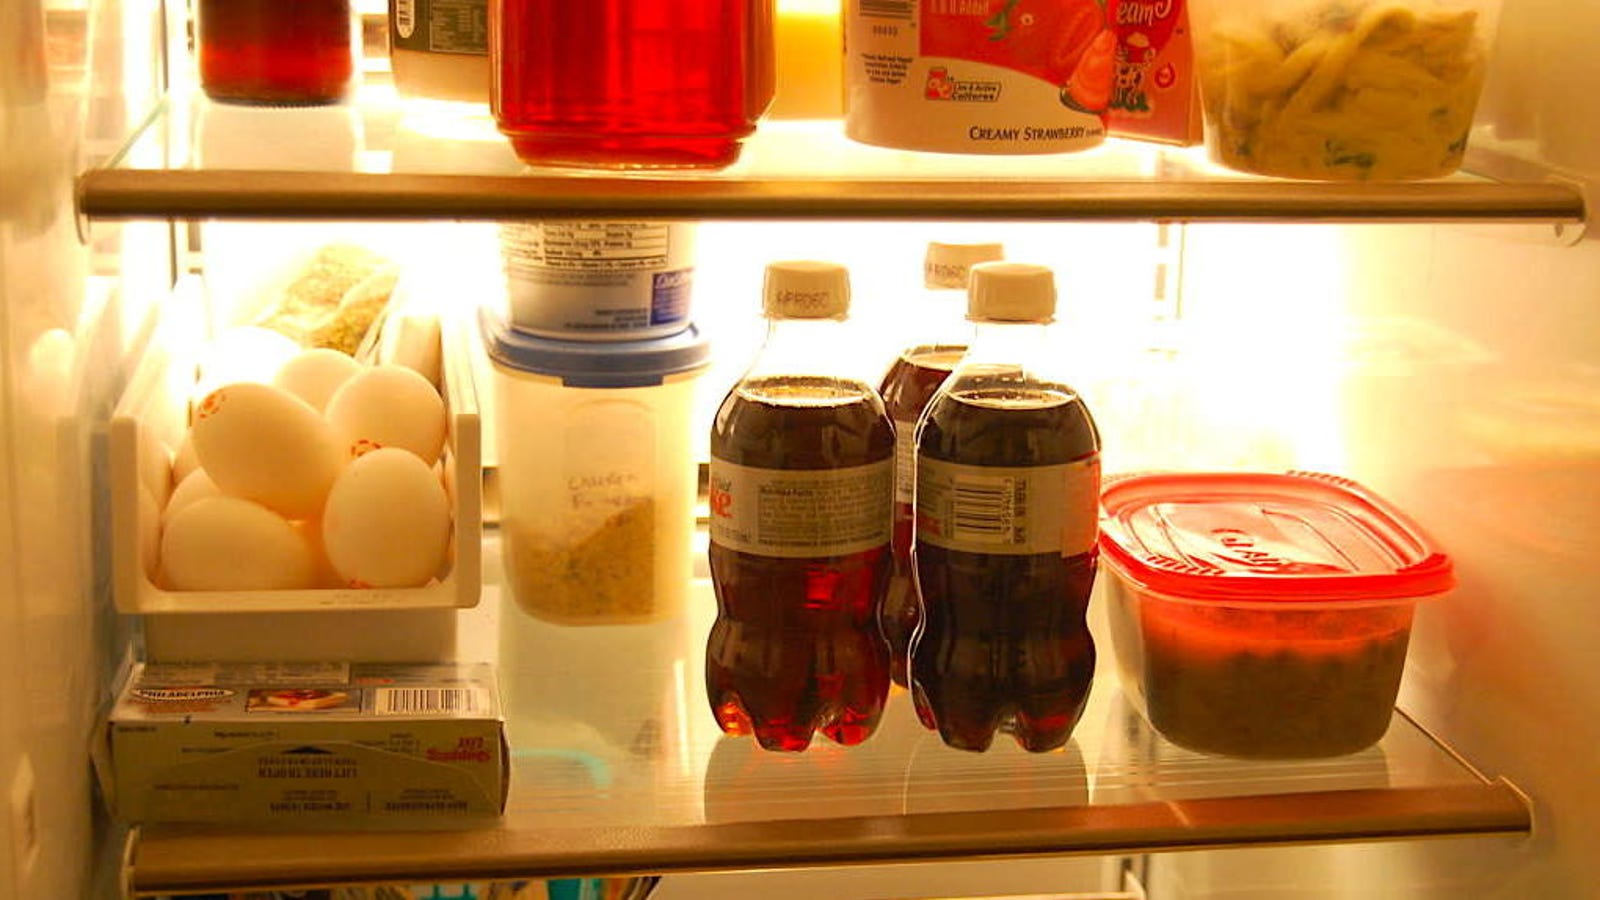 What Temperature Should You Keep Your Refrigerator Set At?